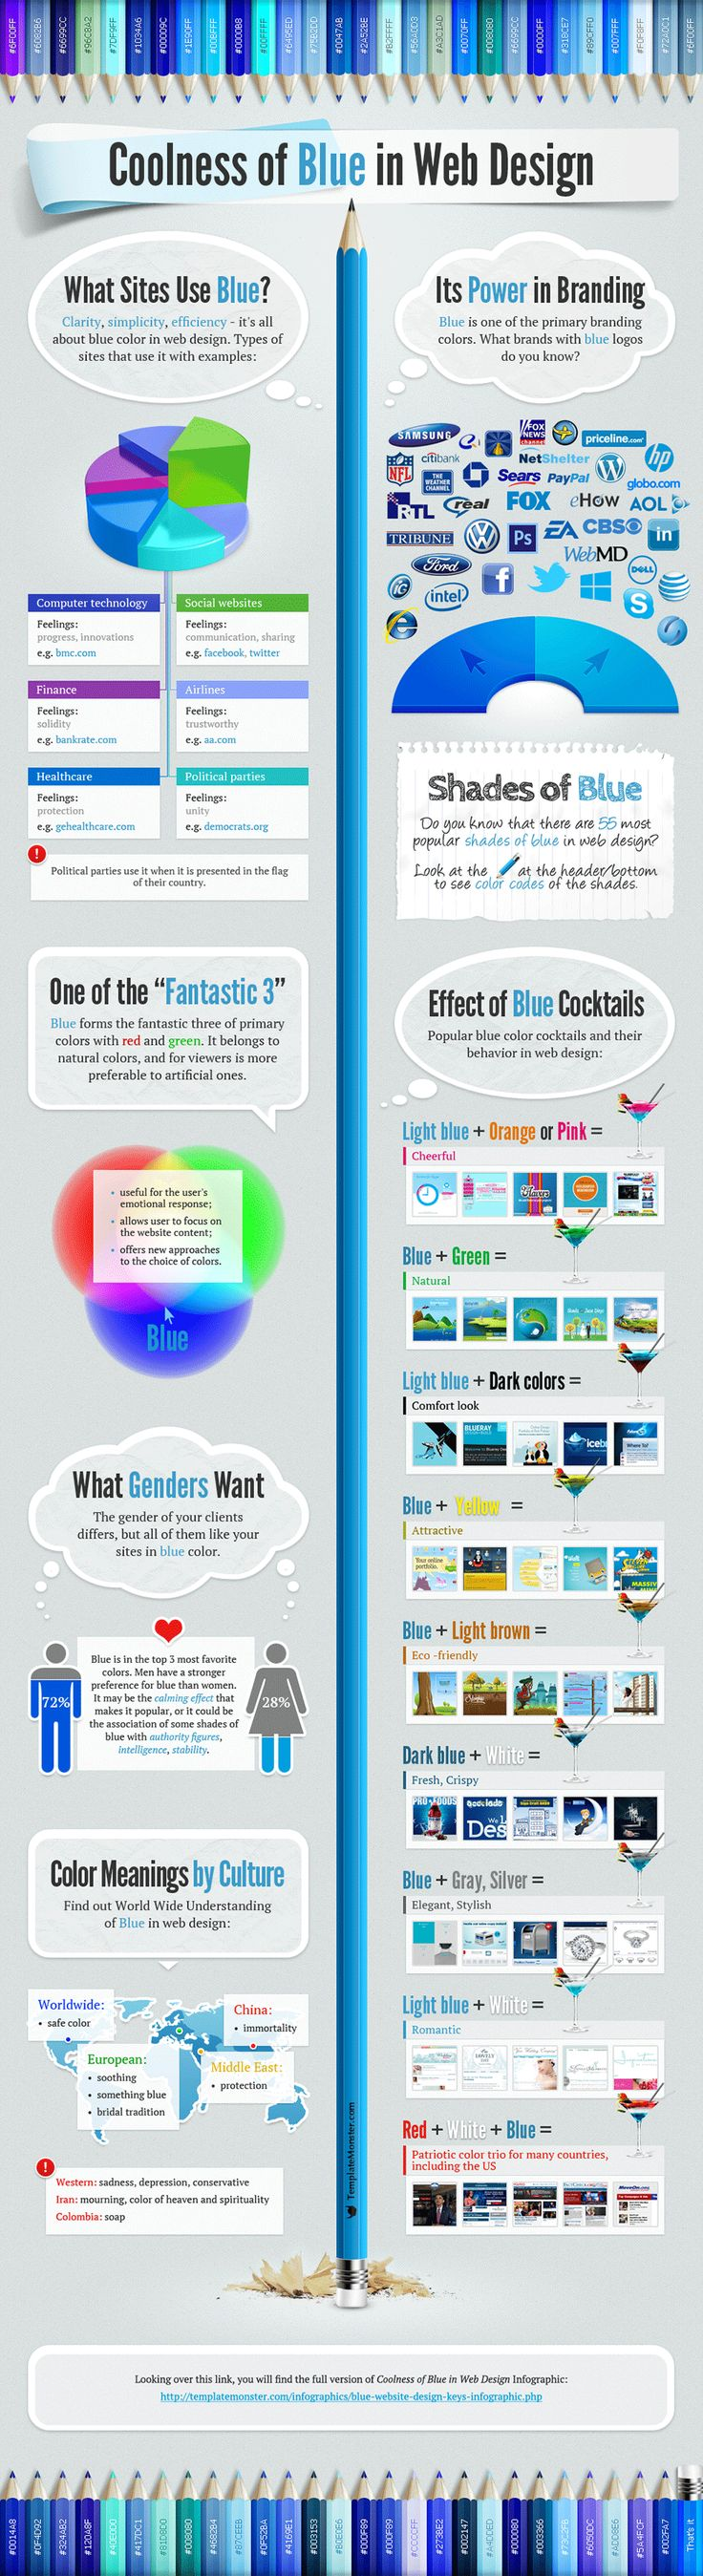 Why Blue Is So Cool In Web Design